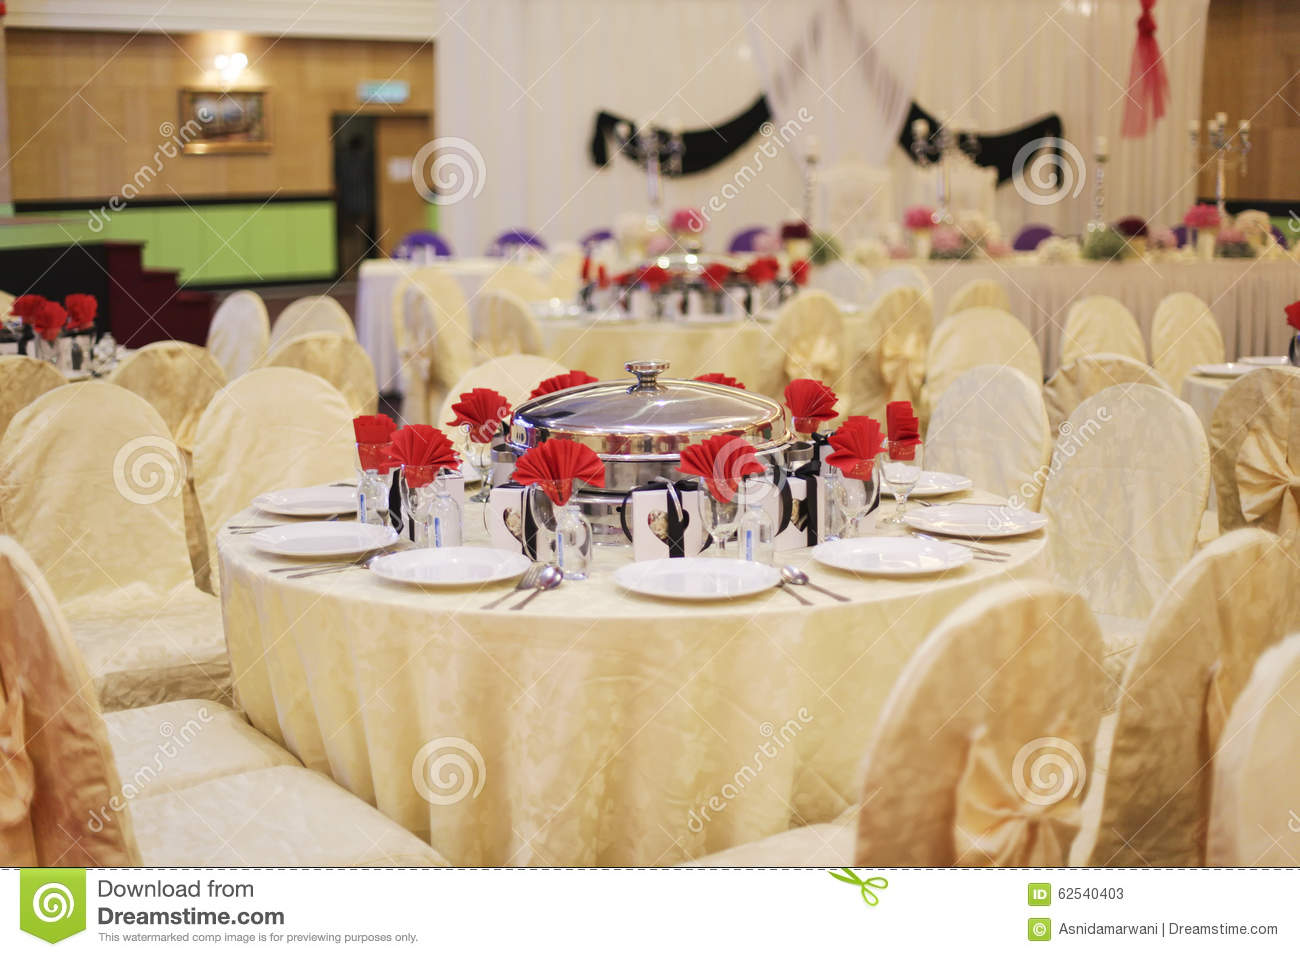 beautiful wedding restaurant for marriage. white decor for bride